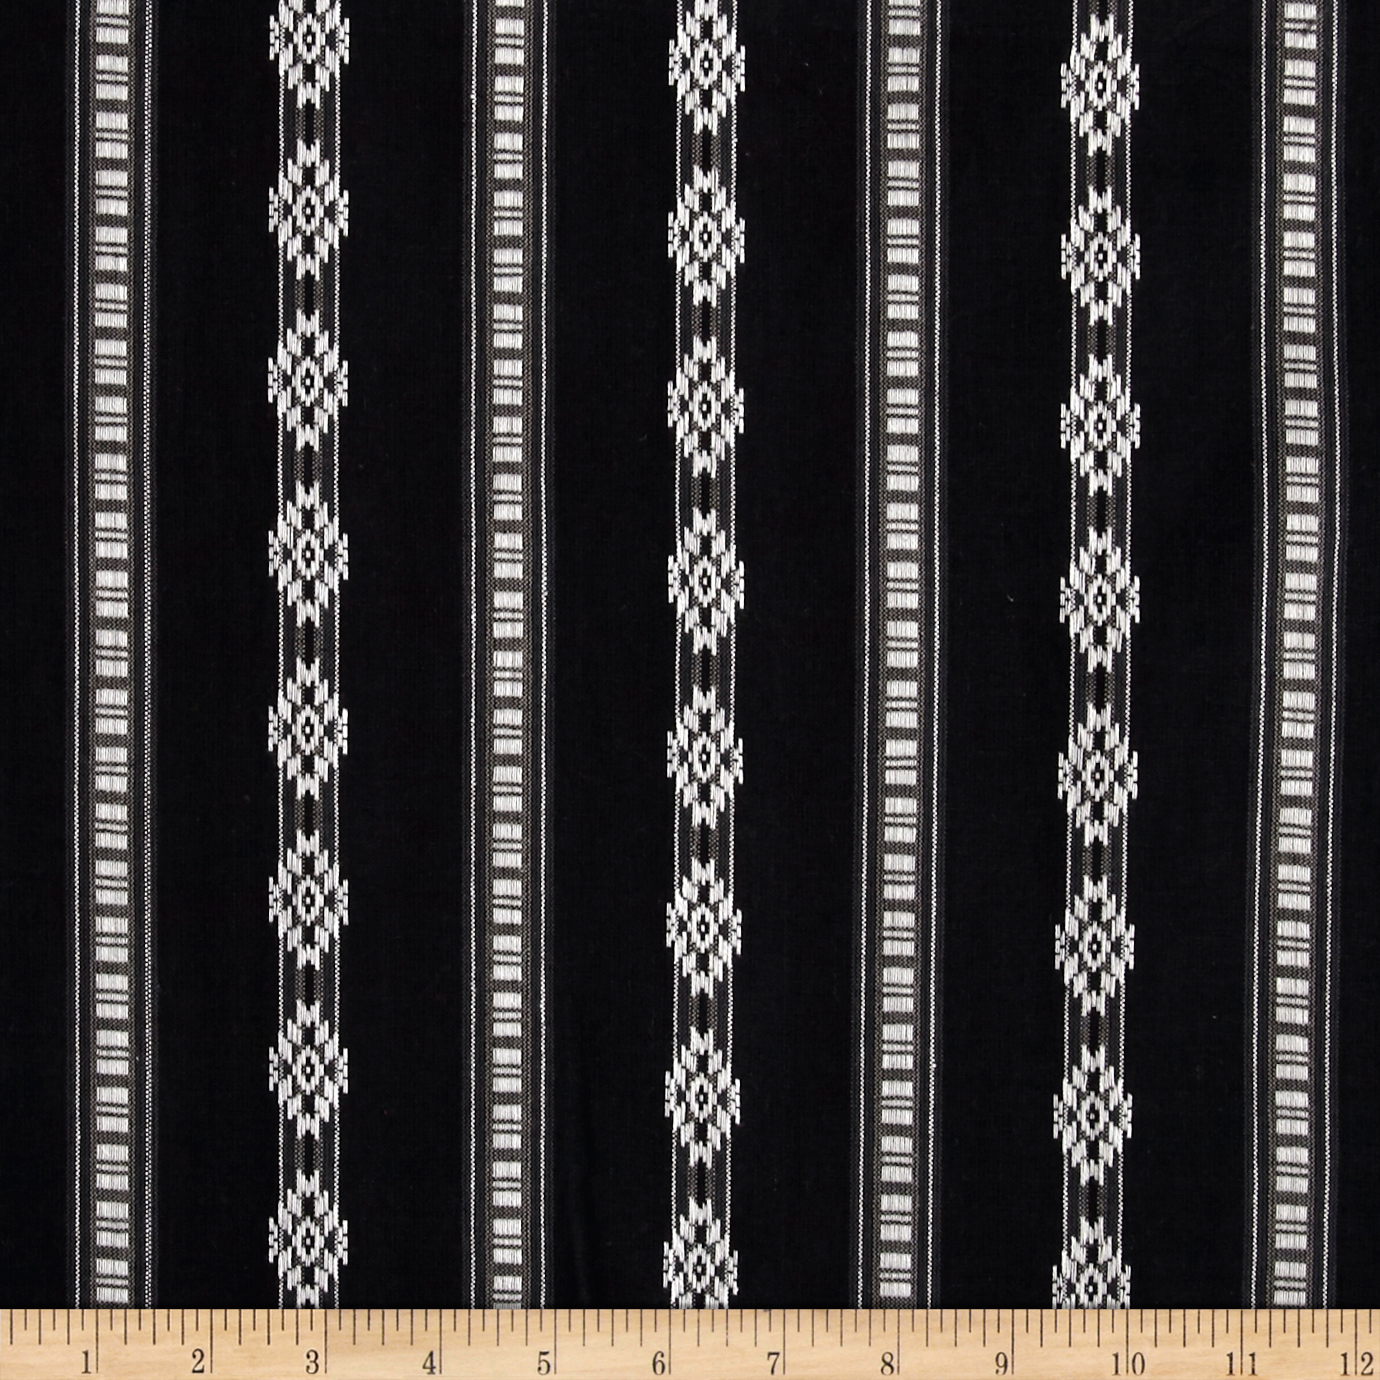 Hudson Bay Diamond Dobby Shirting Black/White Fabric by Textile Creations in USA